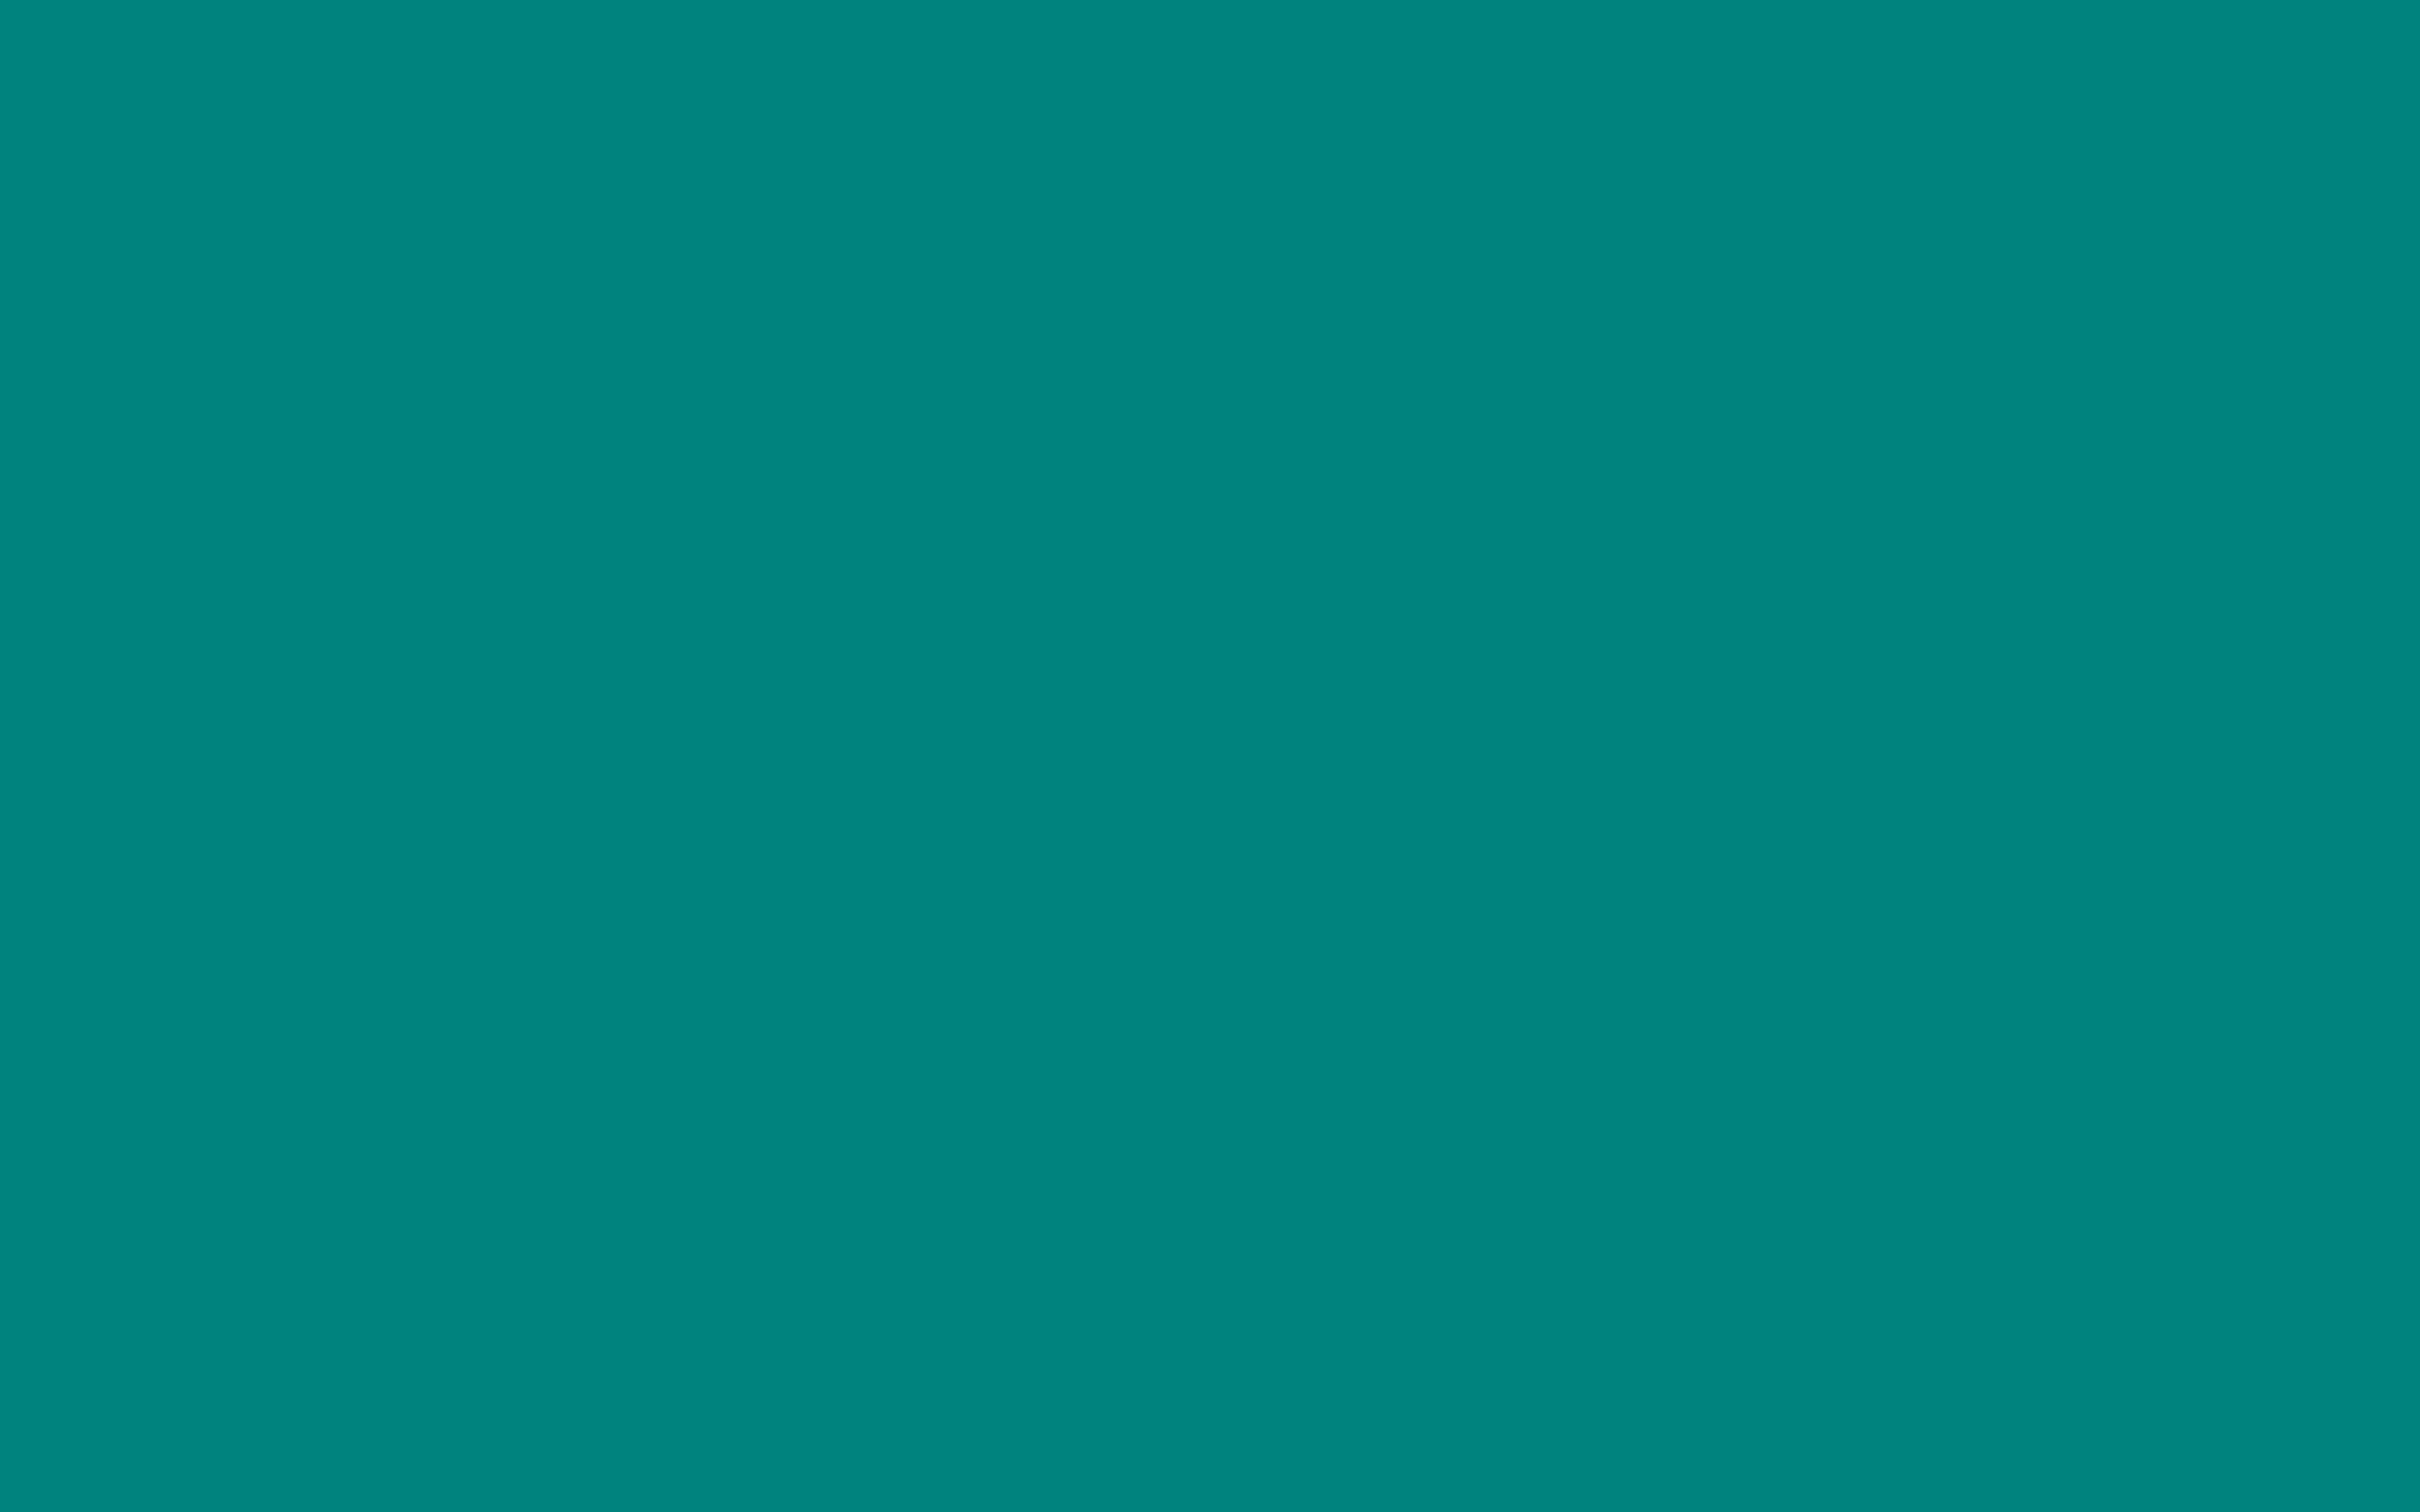 Teal Backgrounds - Wallpaper Cave Plain Teal Background